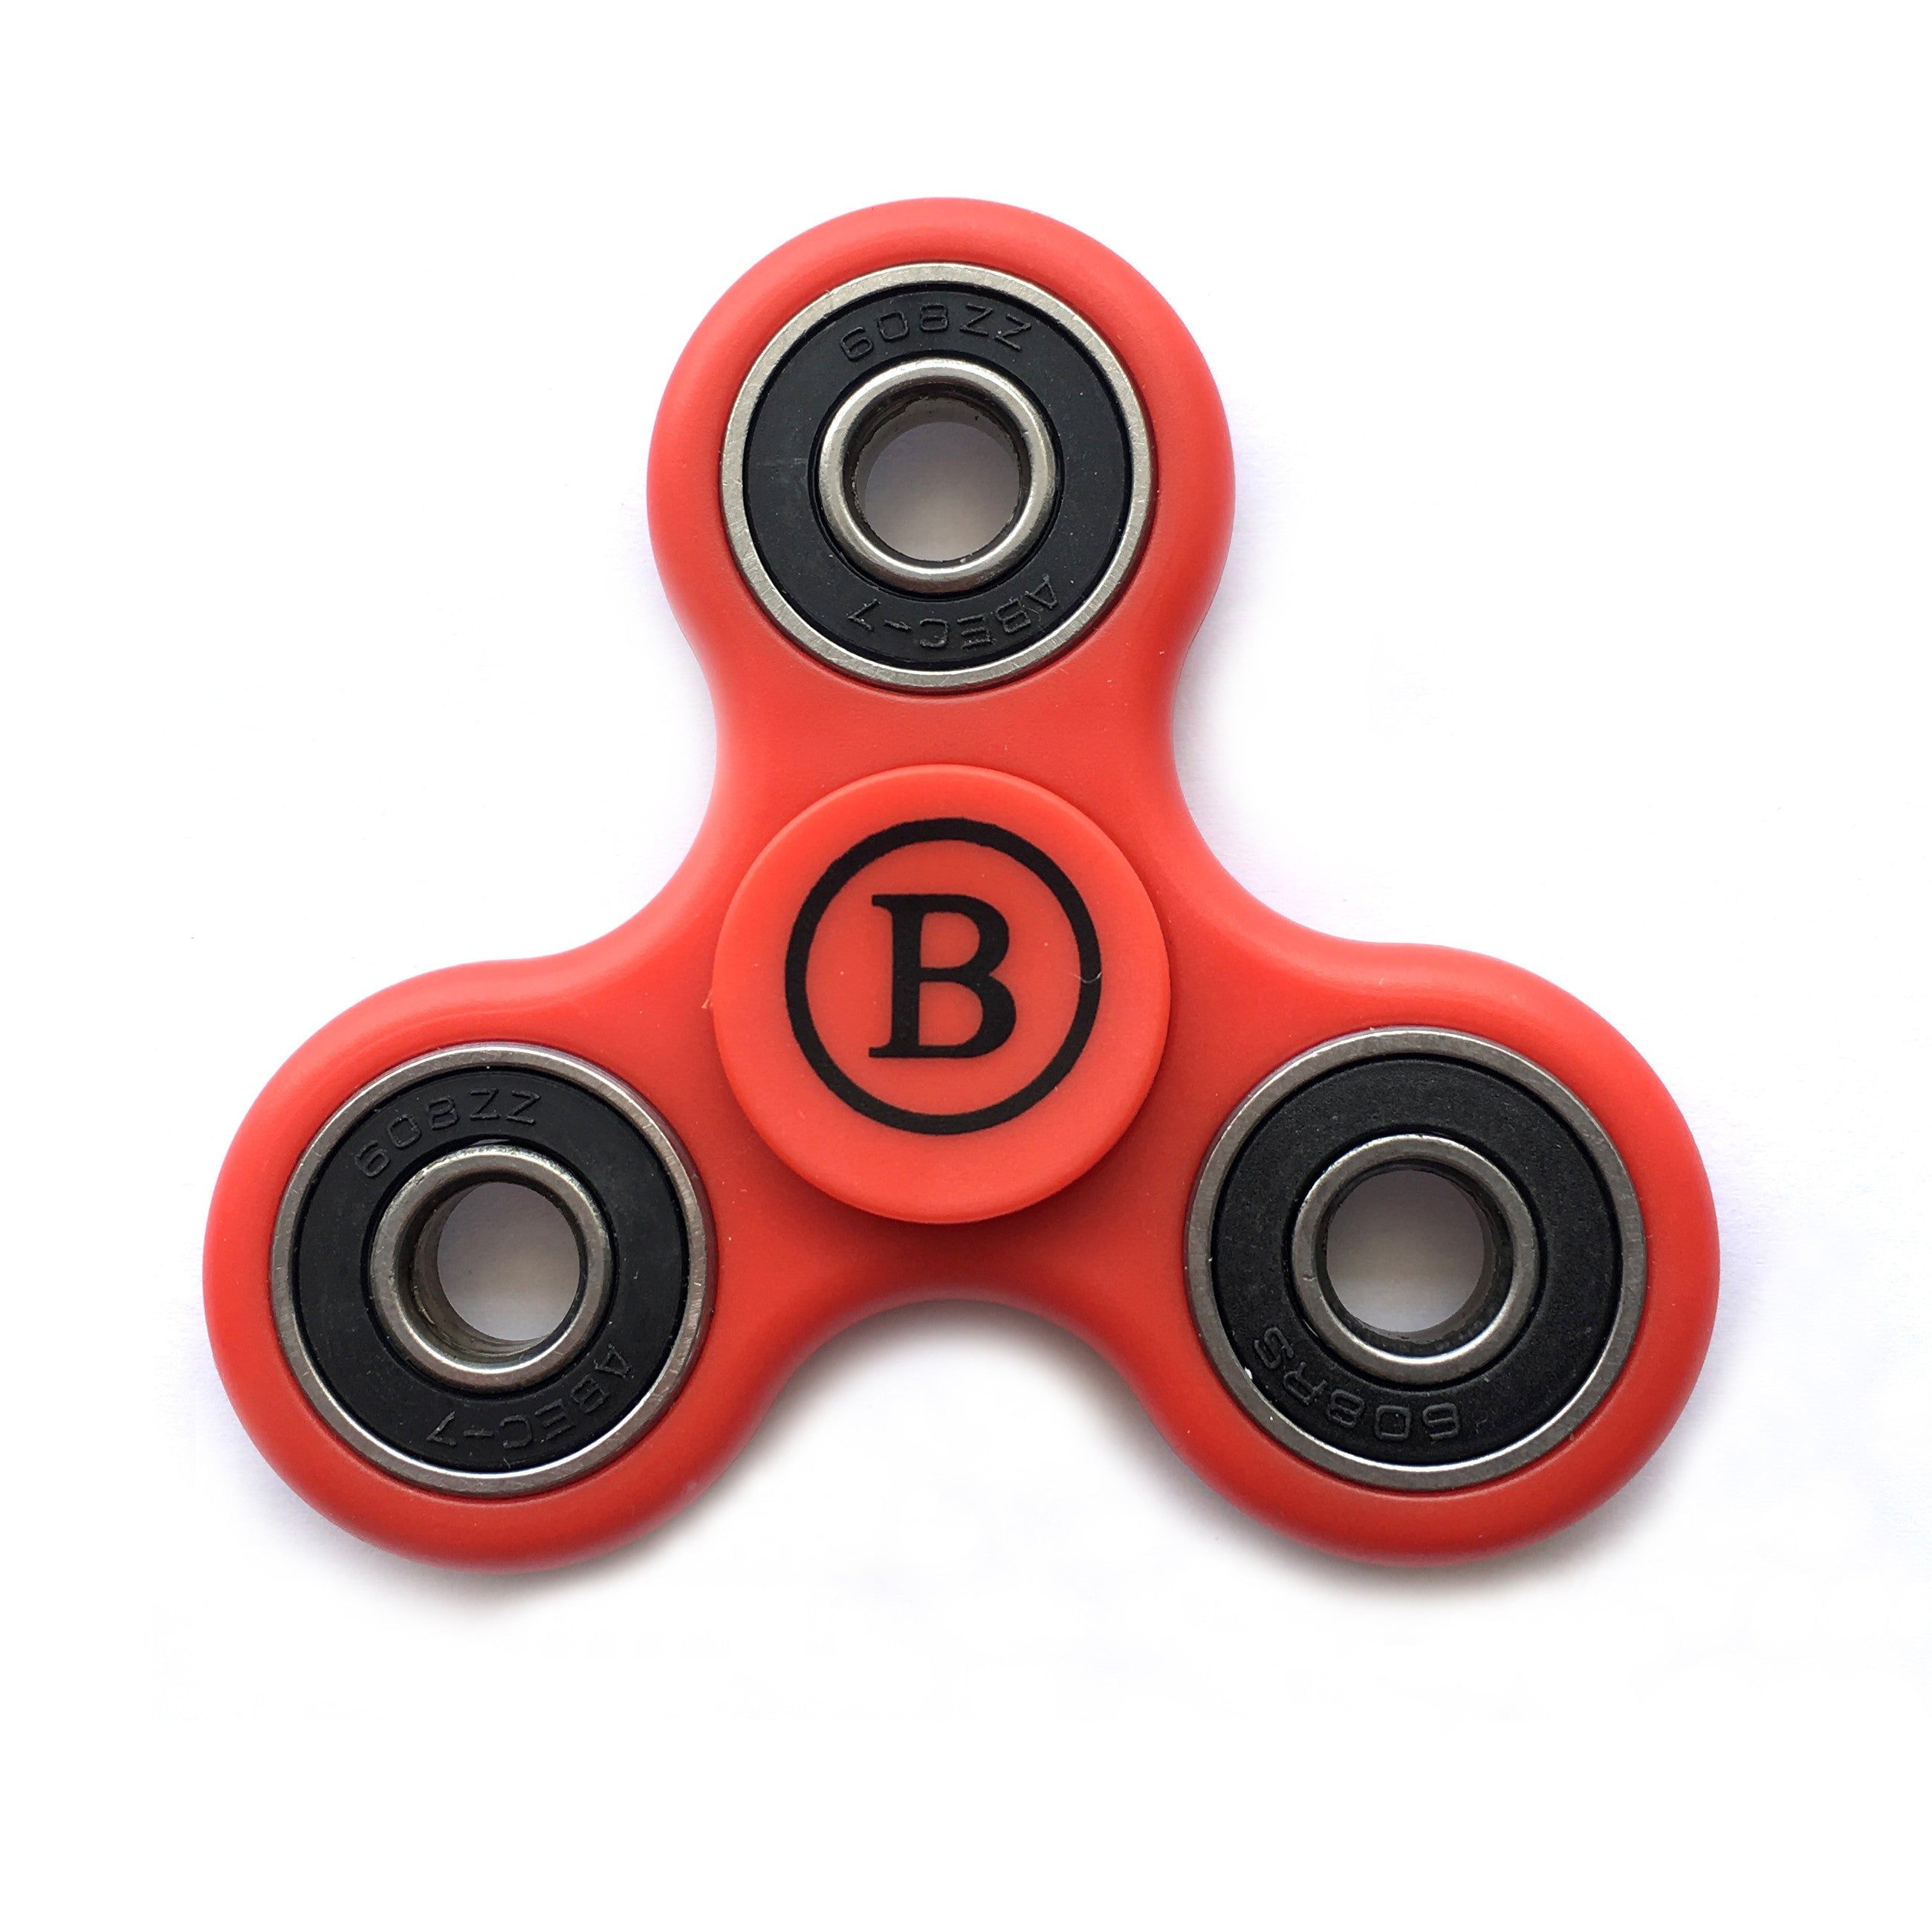 Fidget Hand Spinner High Speed Steel Bearing, Adhd Focus Anxiety Relief Toy - Red